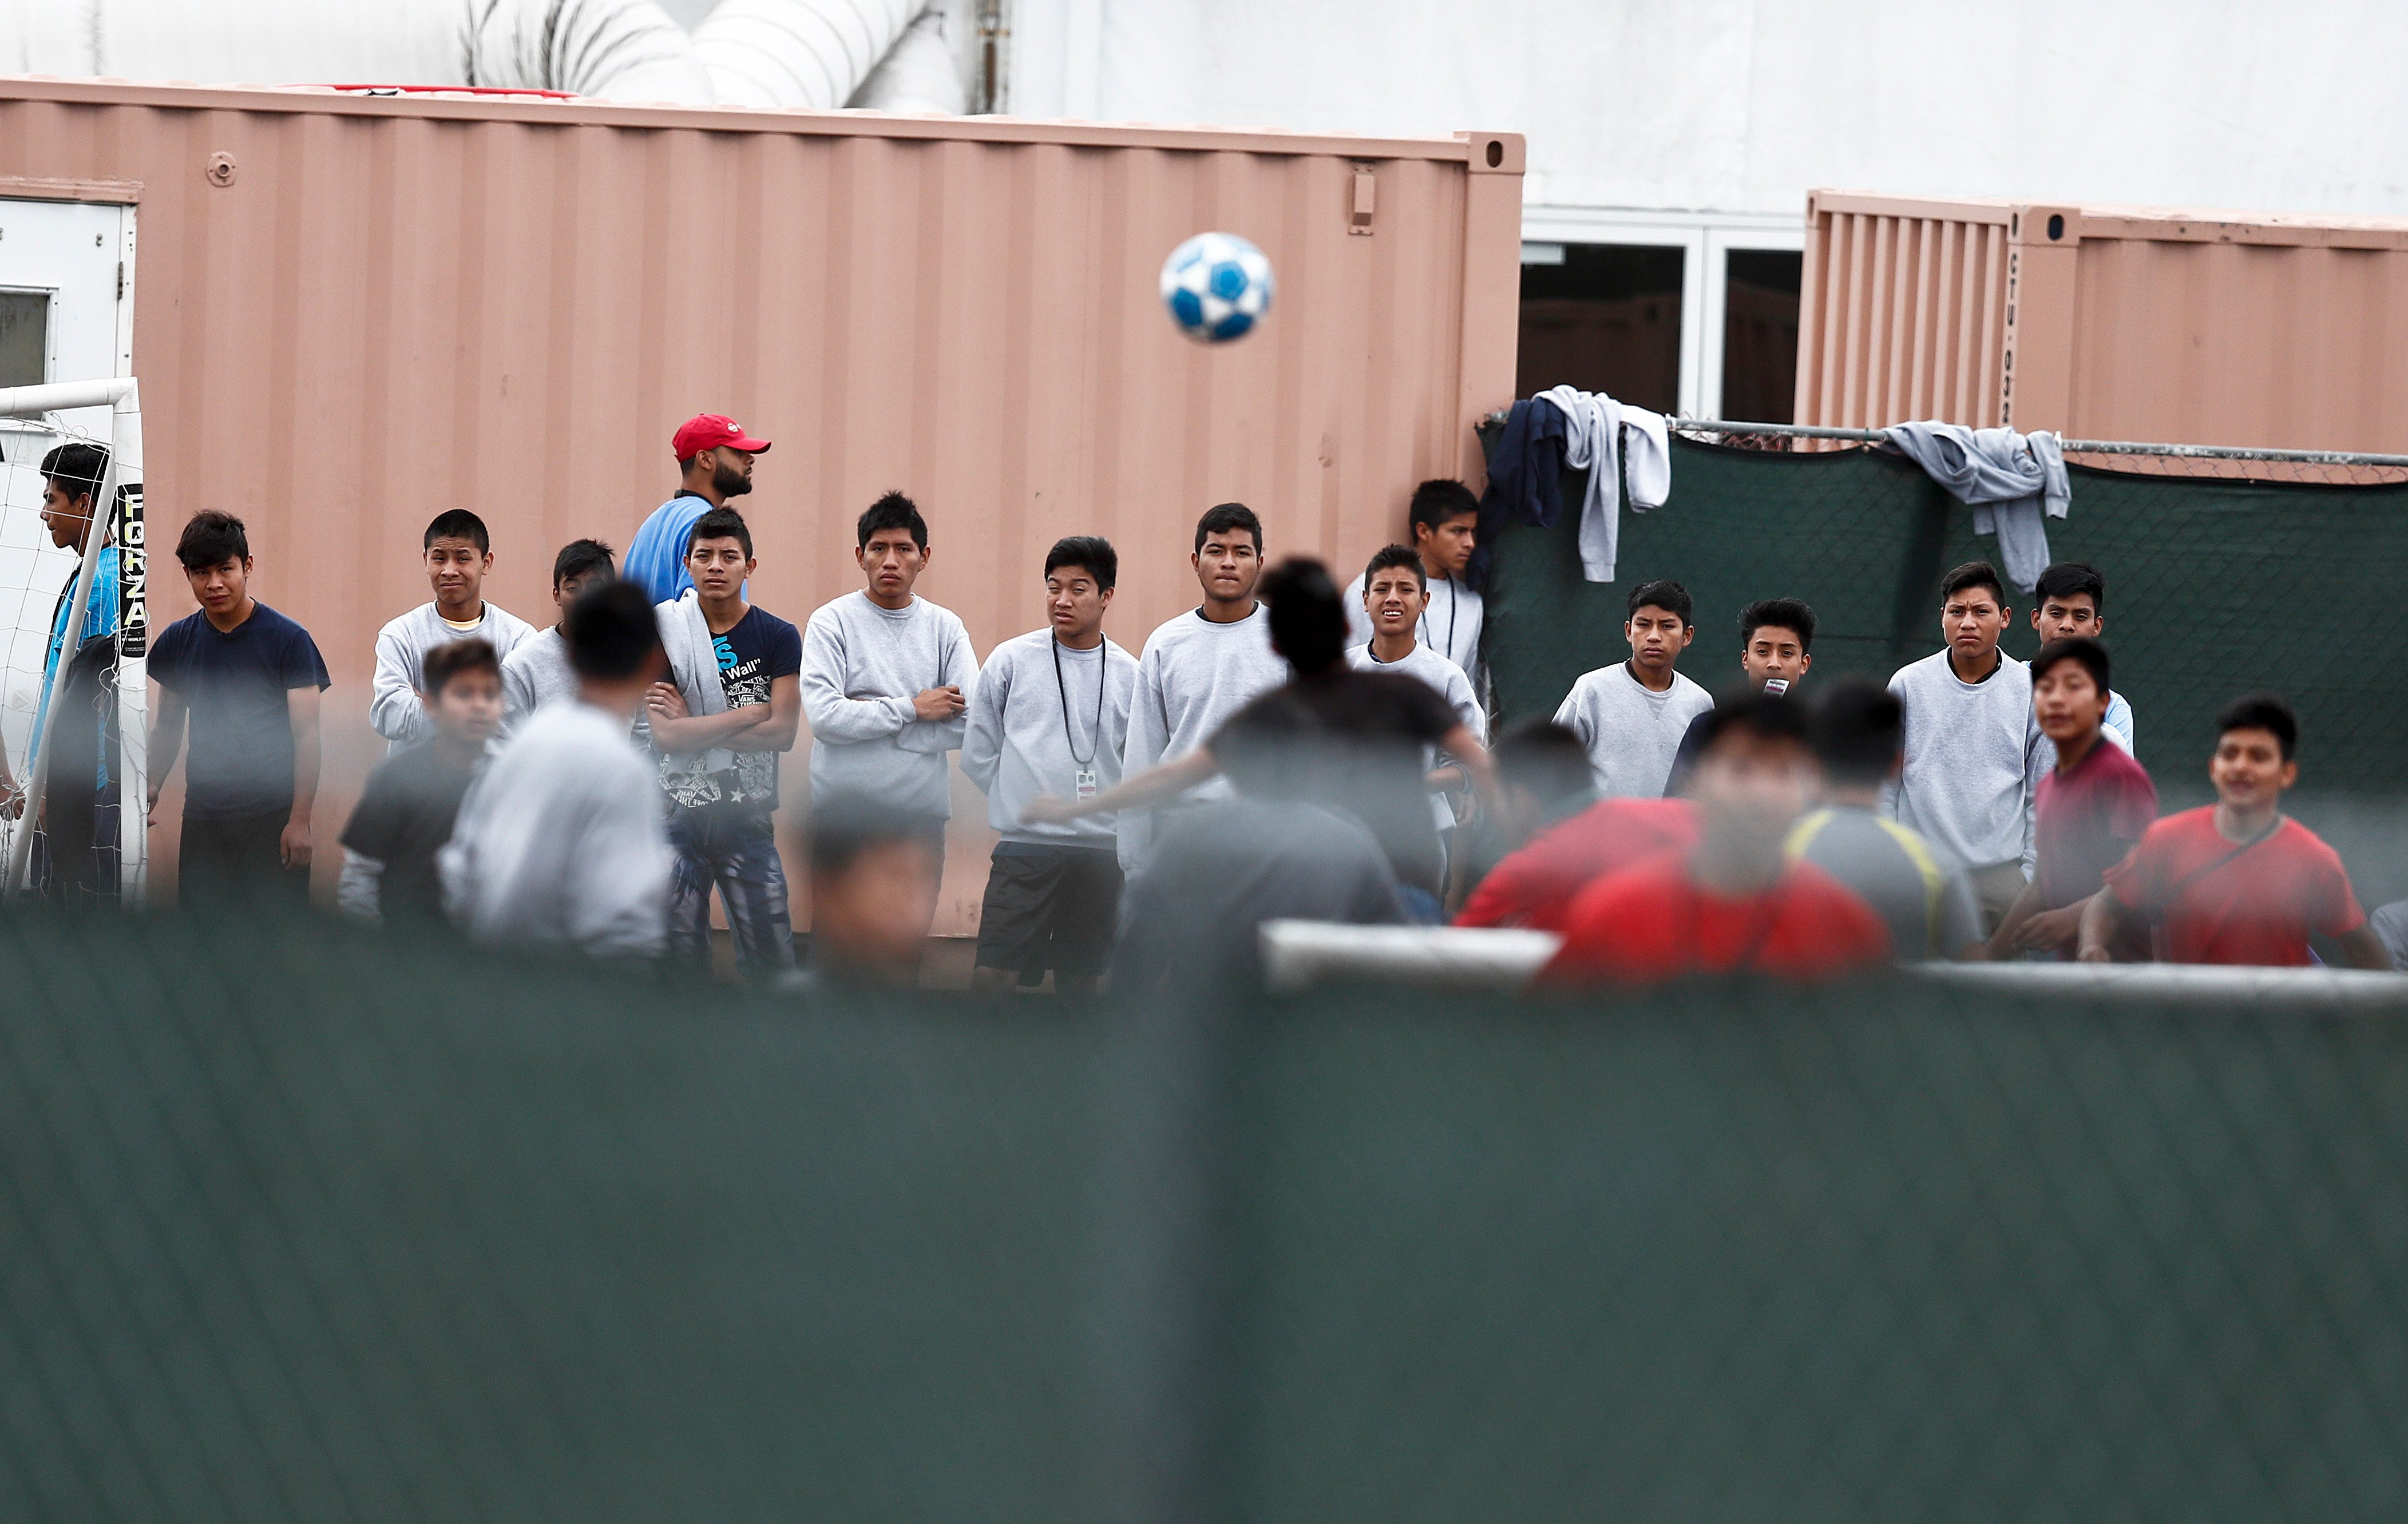 An immigrant boy plays soccer as others gather and watch at the Homestead Temporary Shelter for Unaccompanied Children a former Job Corps site that now houses them Monday, Dec. 10, 2018, in Homestead, Fla. (AP Photo/Brynn Anderson)